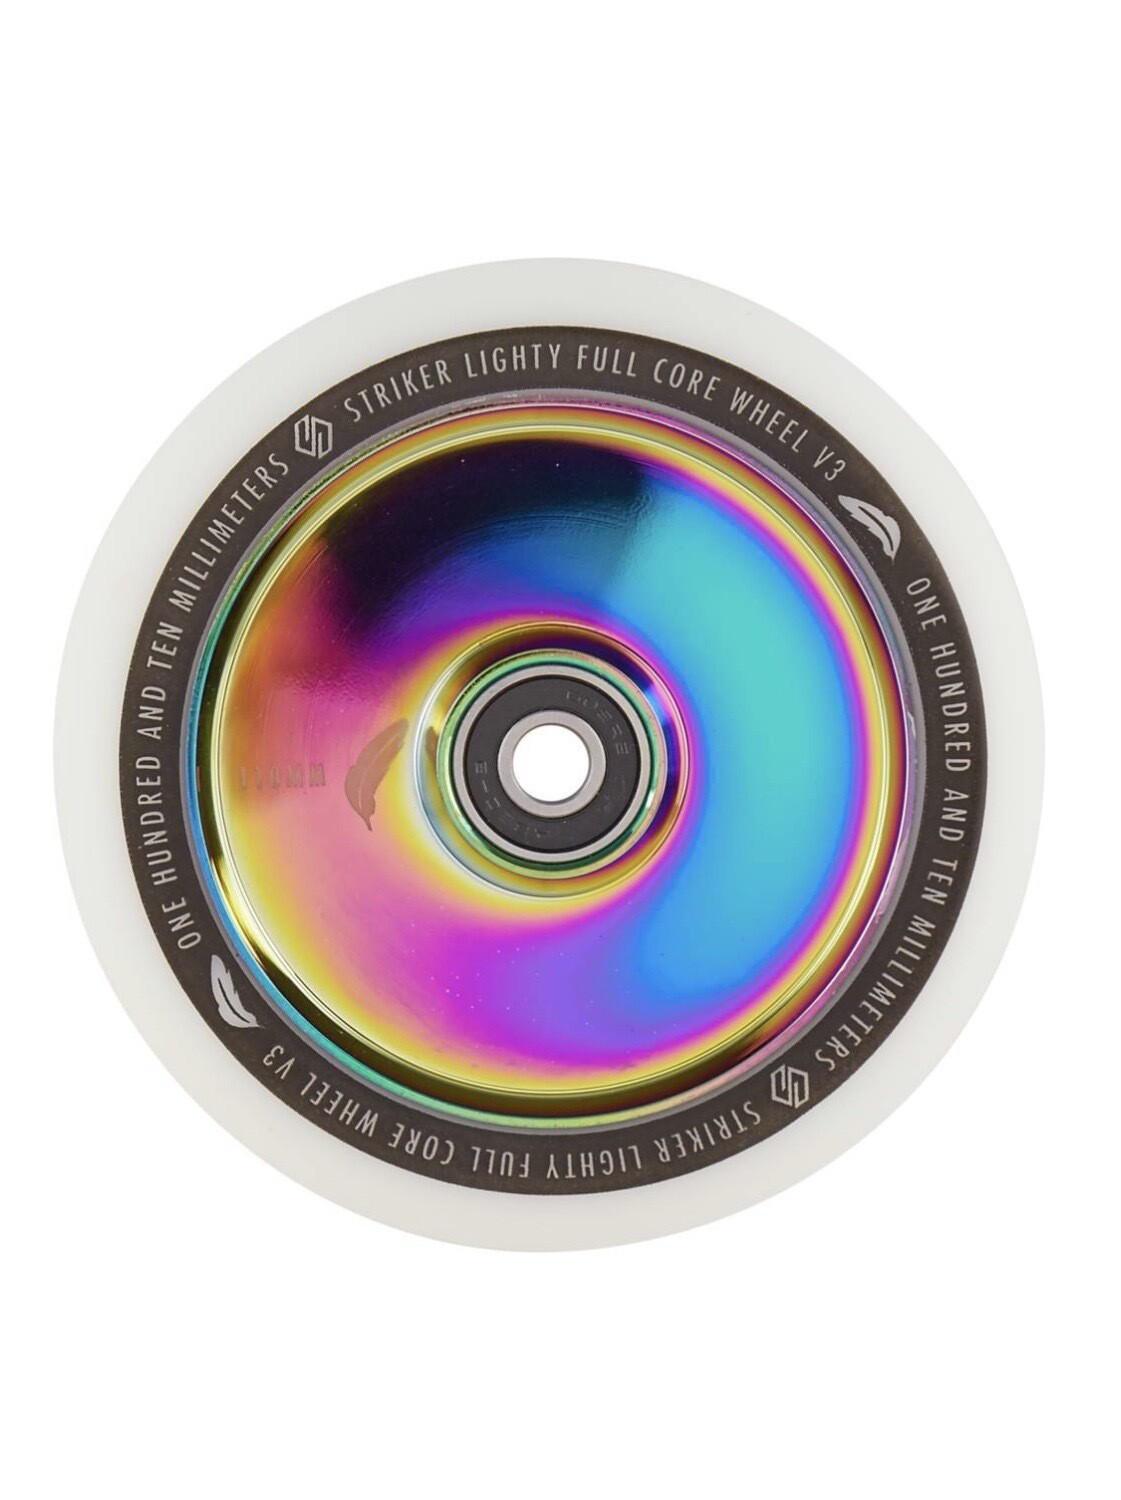 Striker Lighty Full Core V3 White Pro Scooter Wheel (Color: Rainbow)